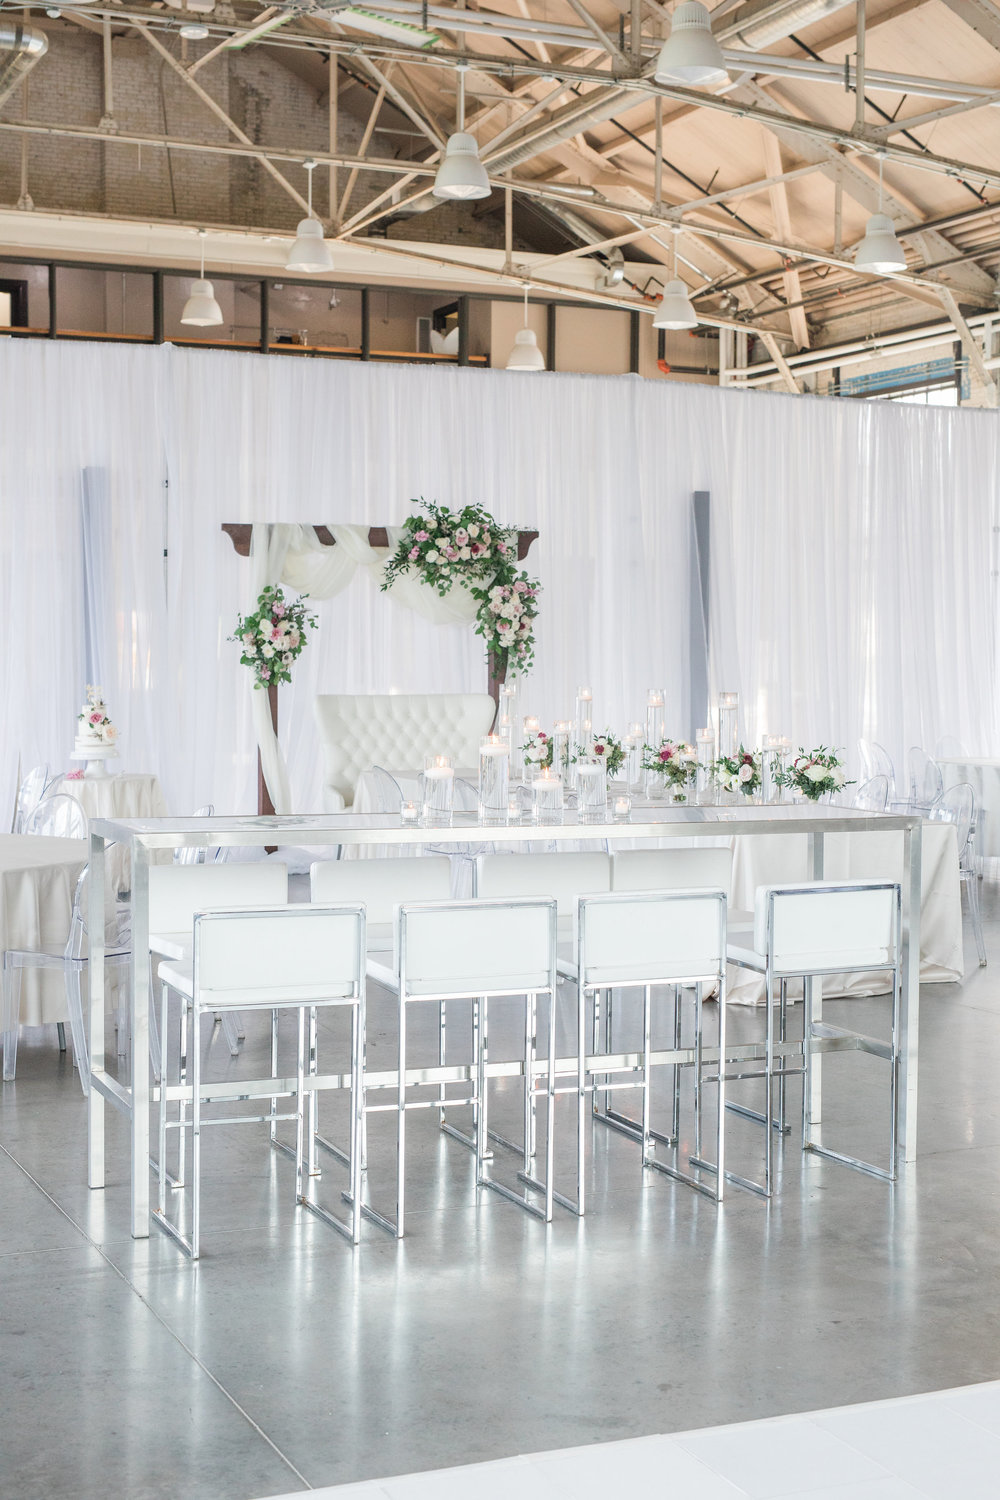 Horticulture Build Toast Events Wedding